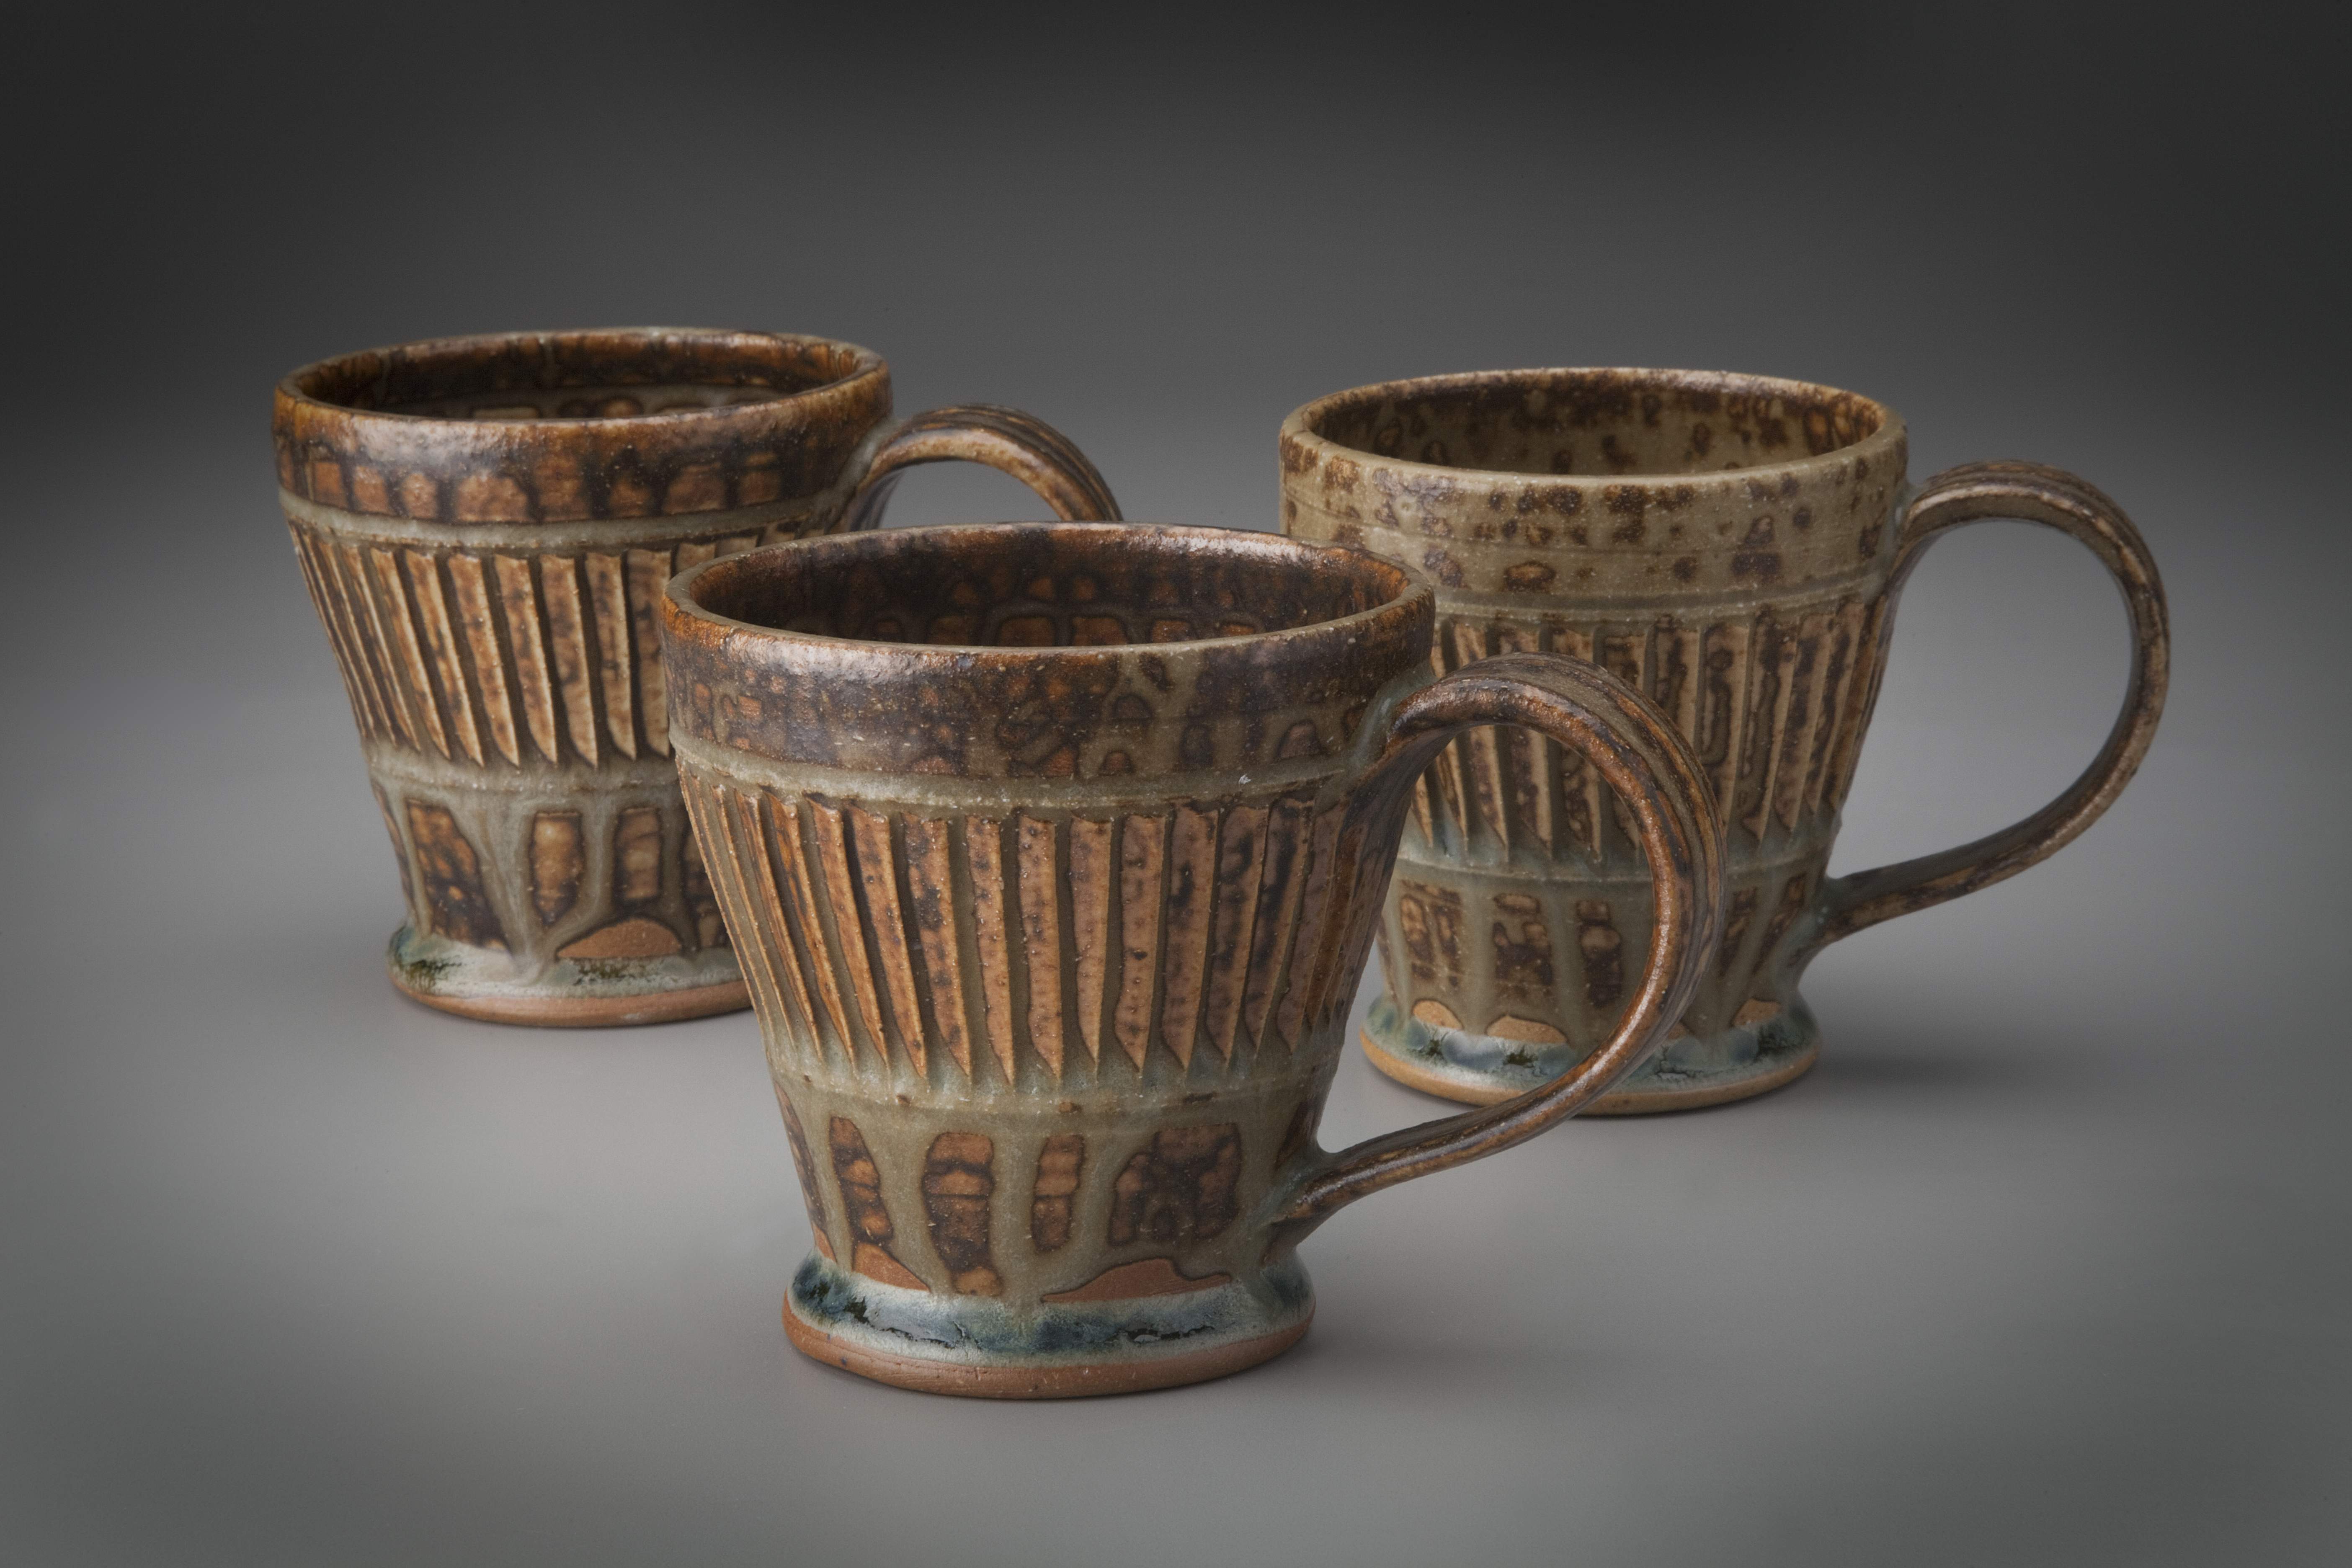 Vertically carved mugs